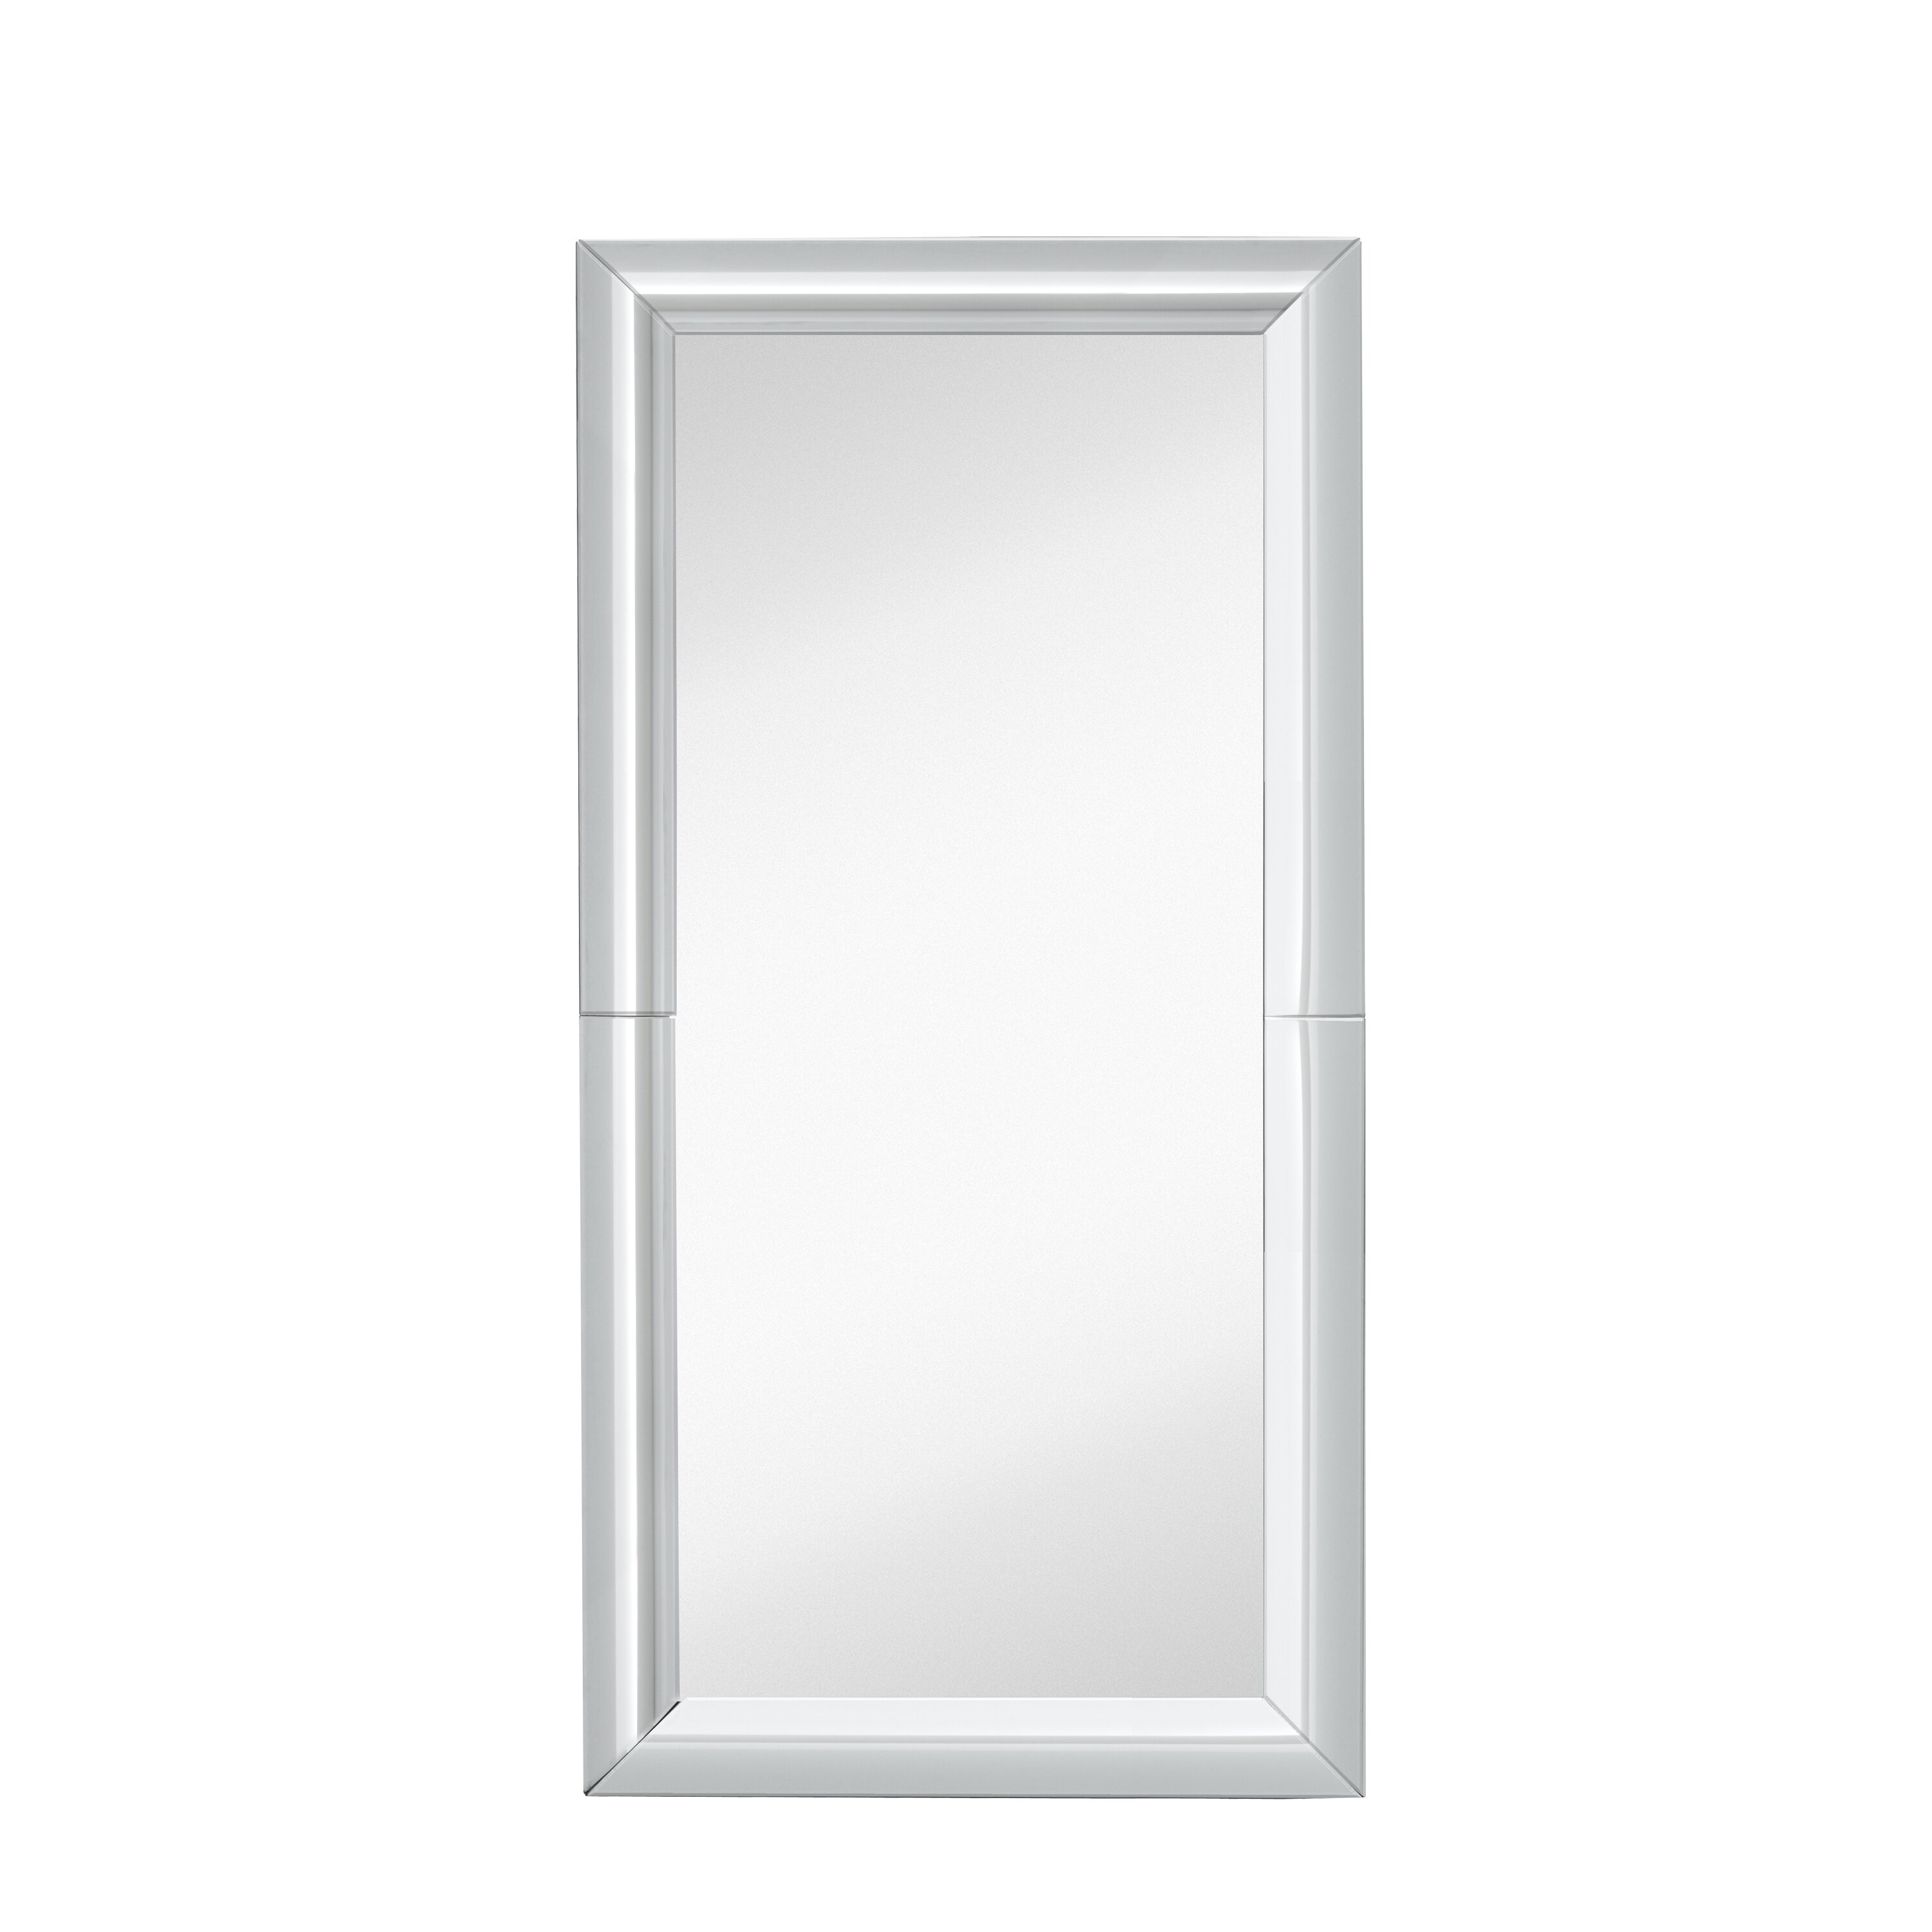 Majestic mirror large beautiful rectangular full length for Full length wall mirror